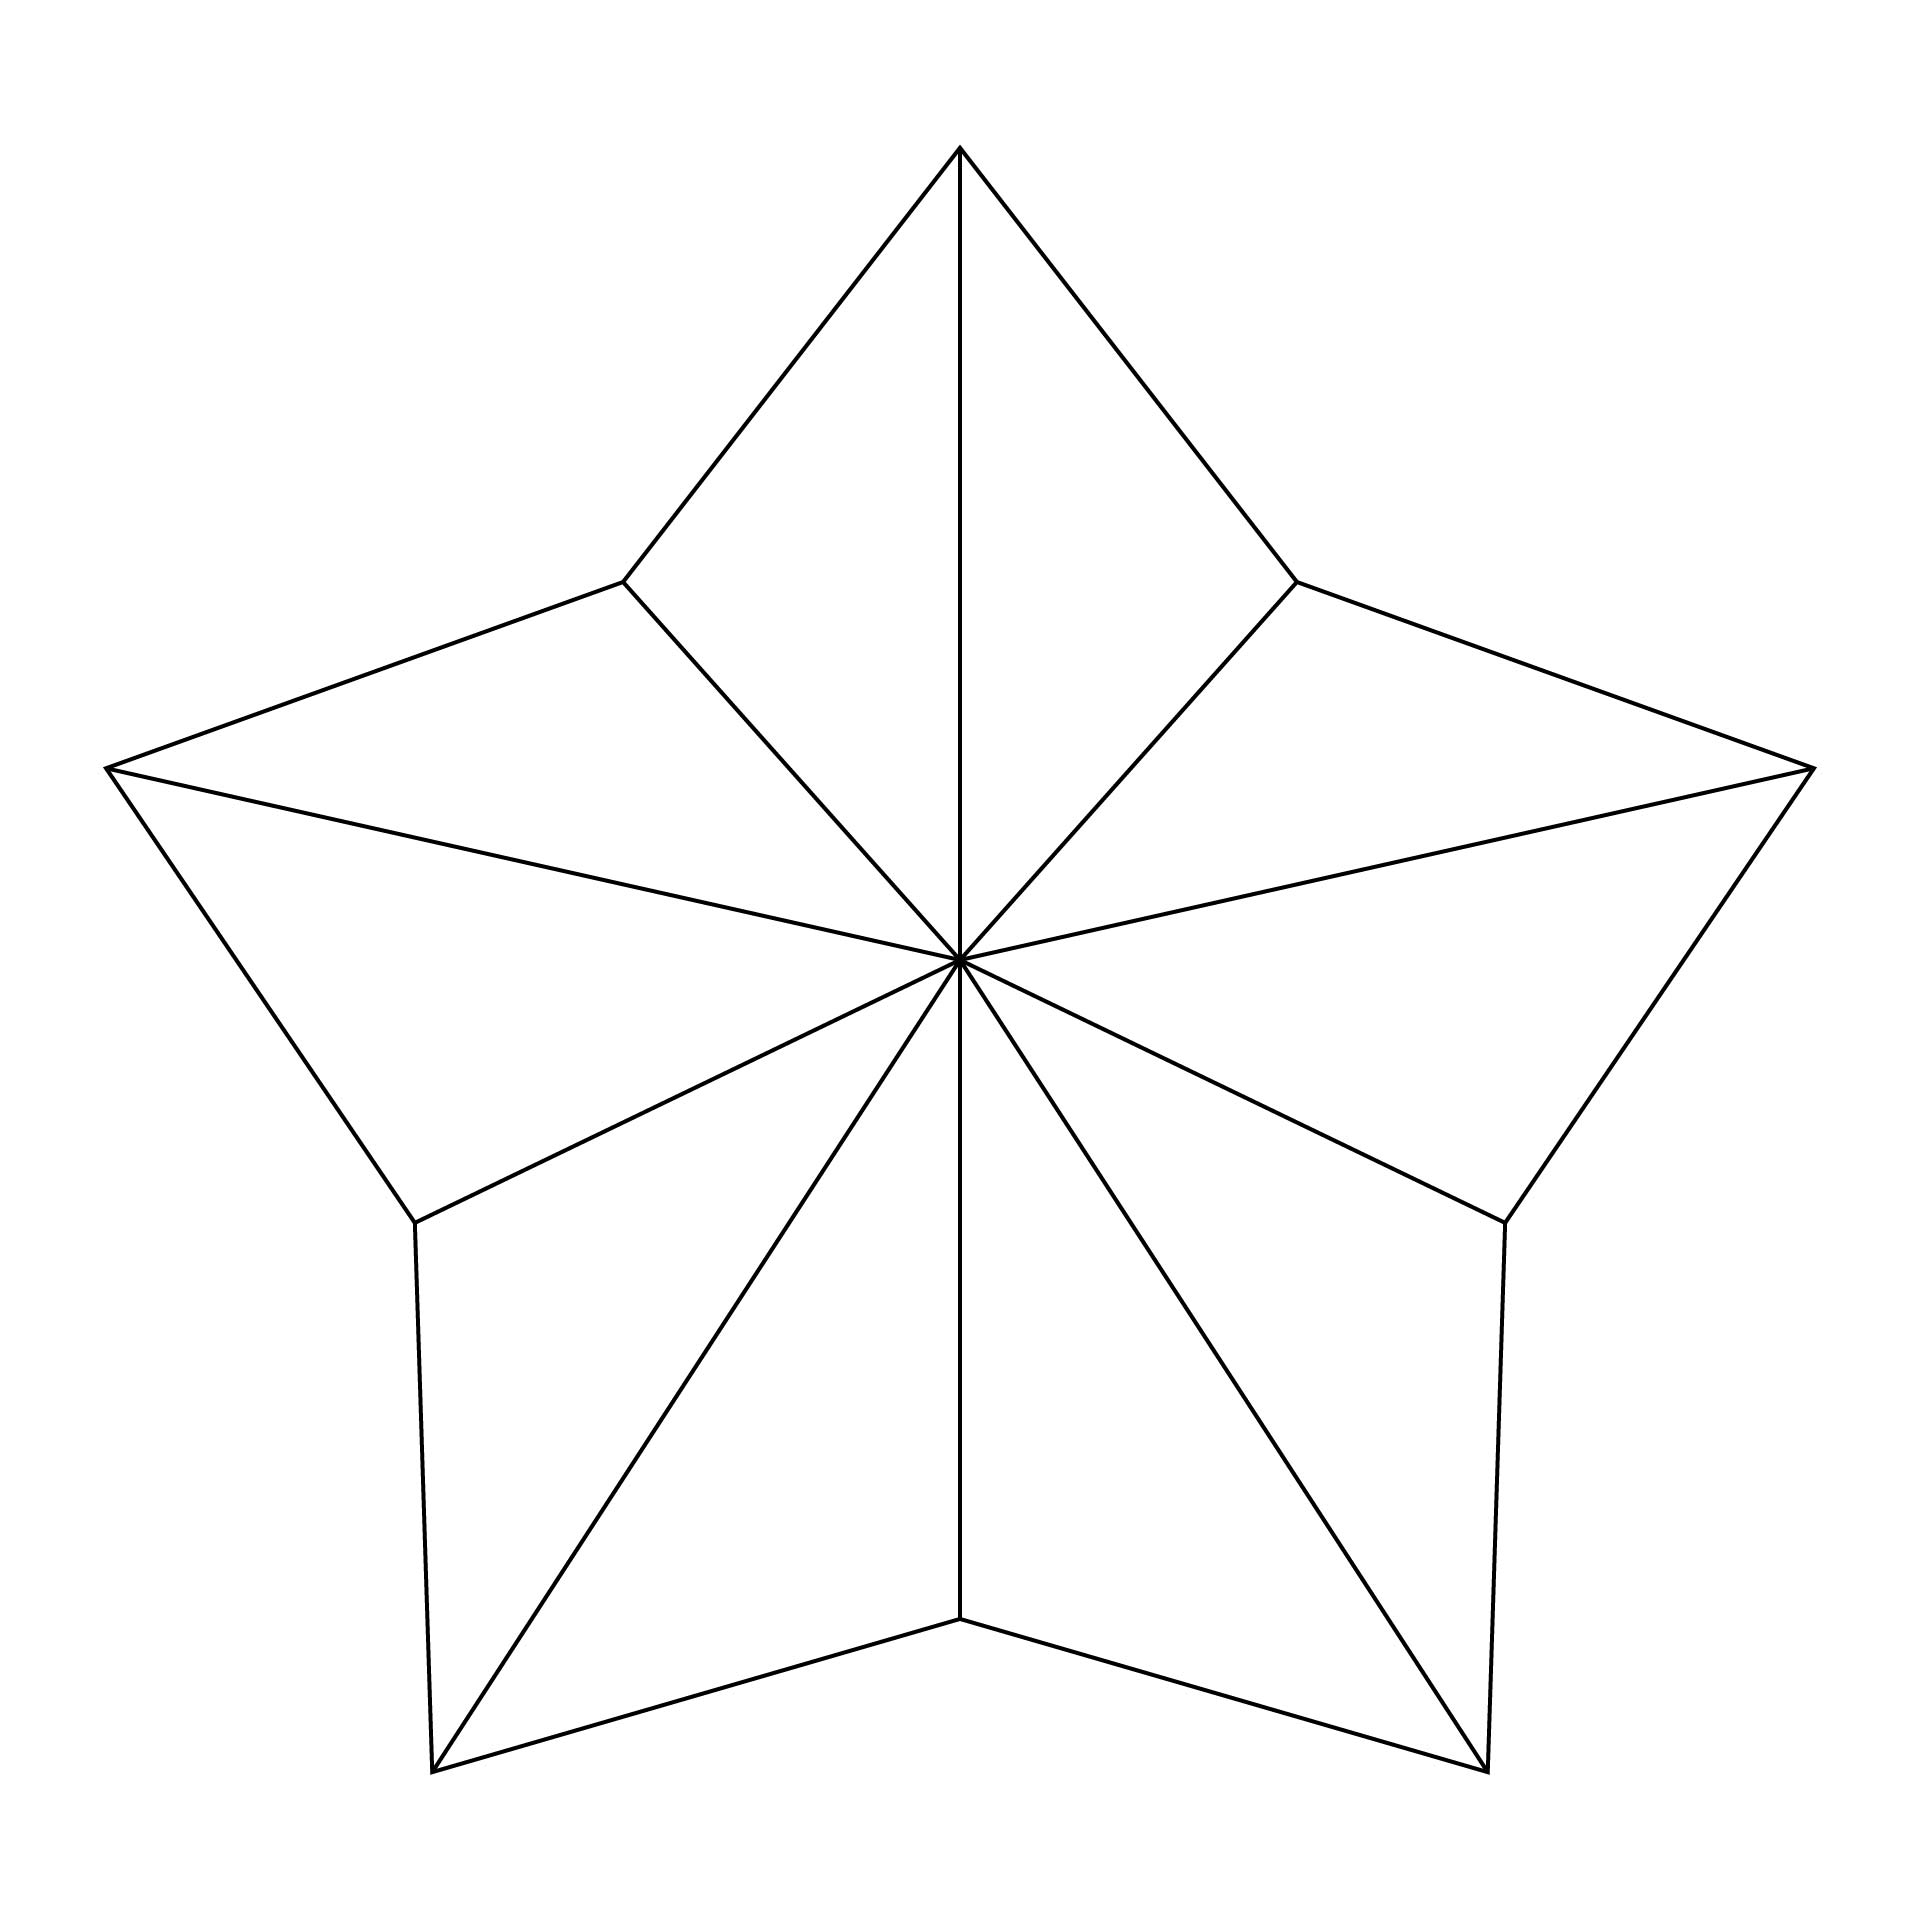 6 Images of Printable Cut Out Star Shape